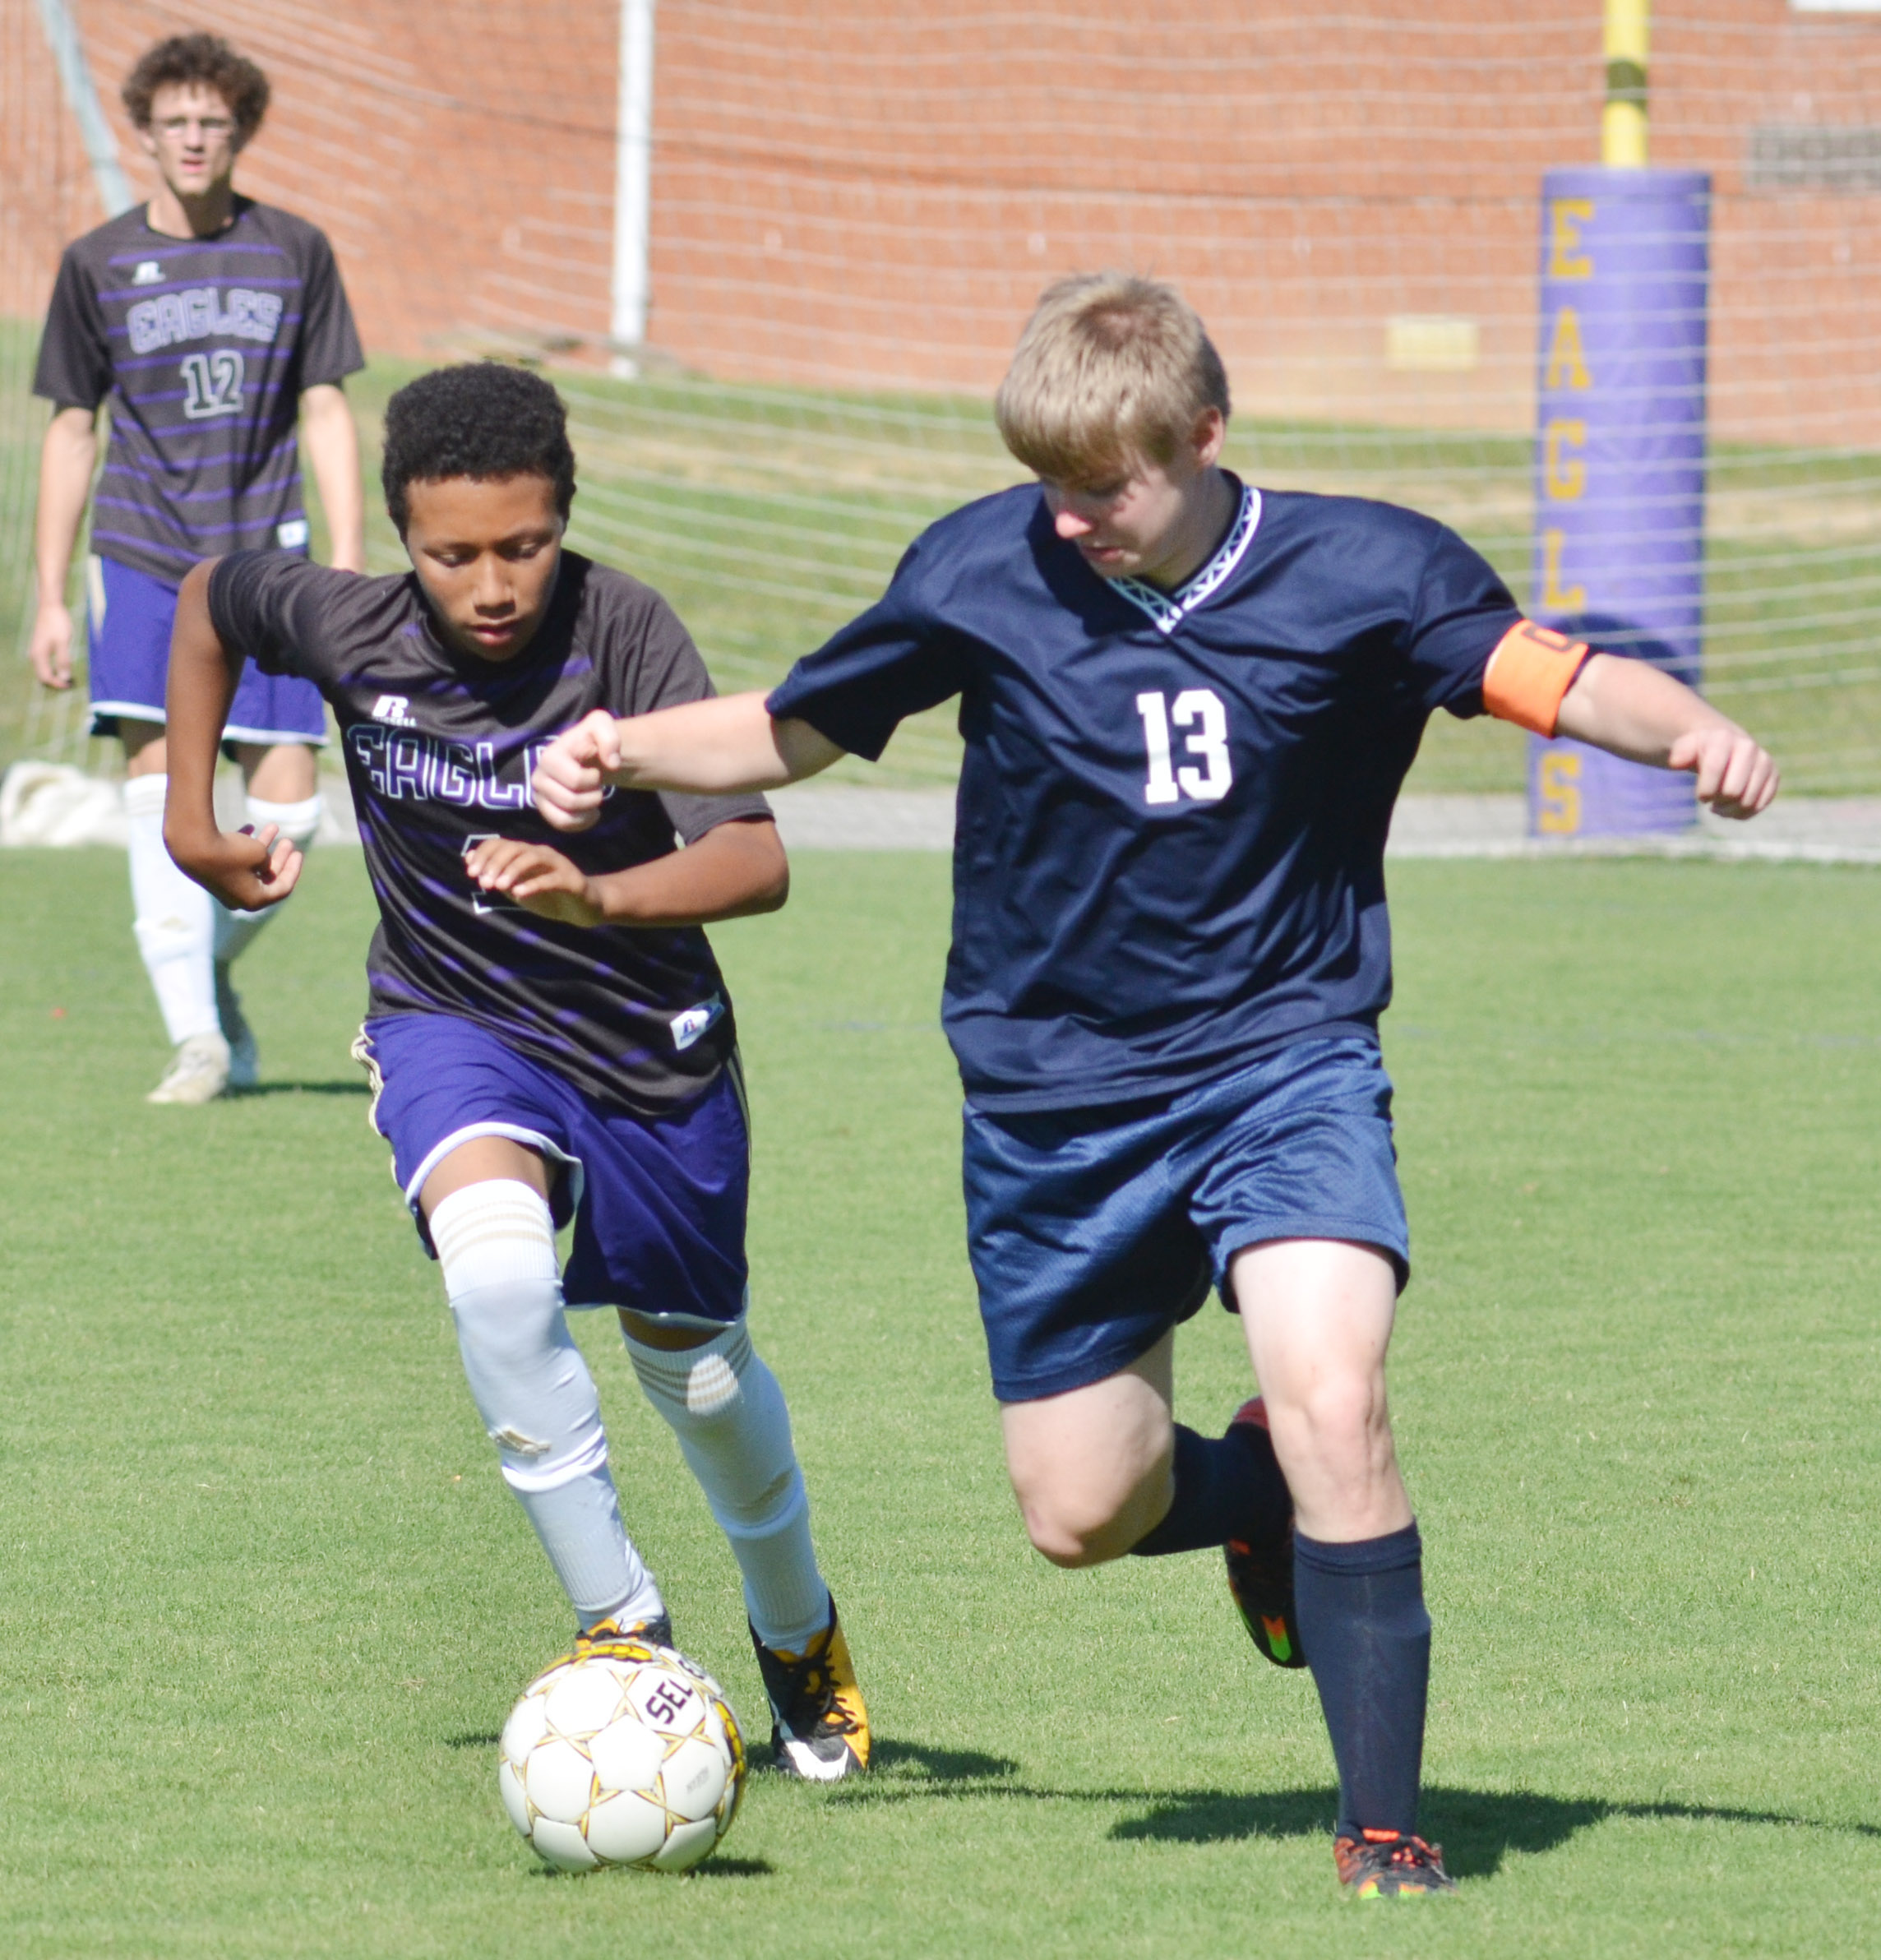 CHS freshman Jastyn Shively runs for the ball.